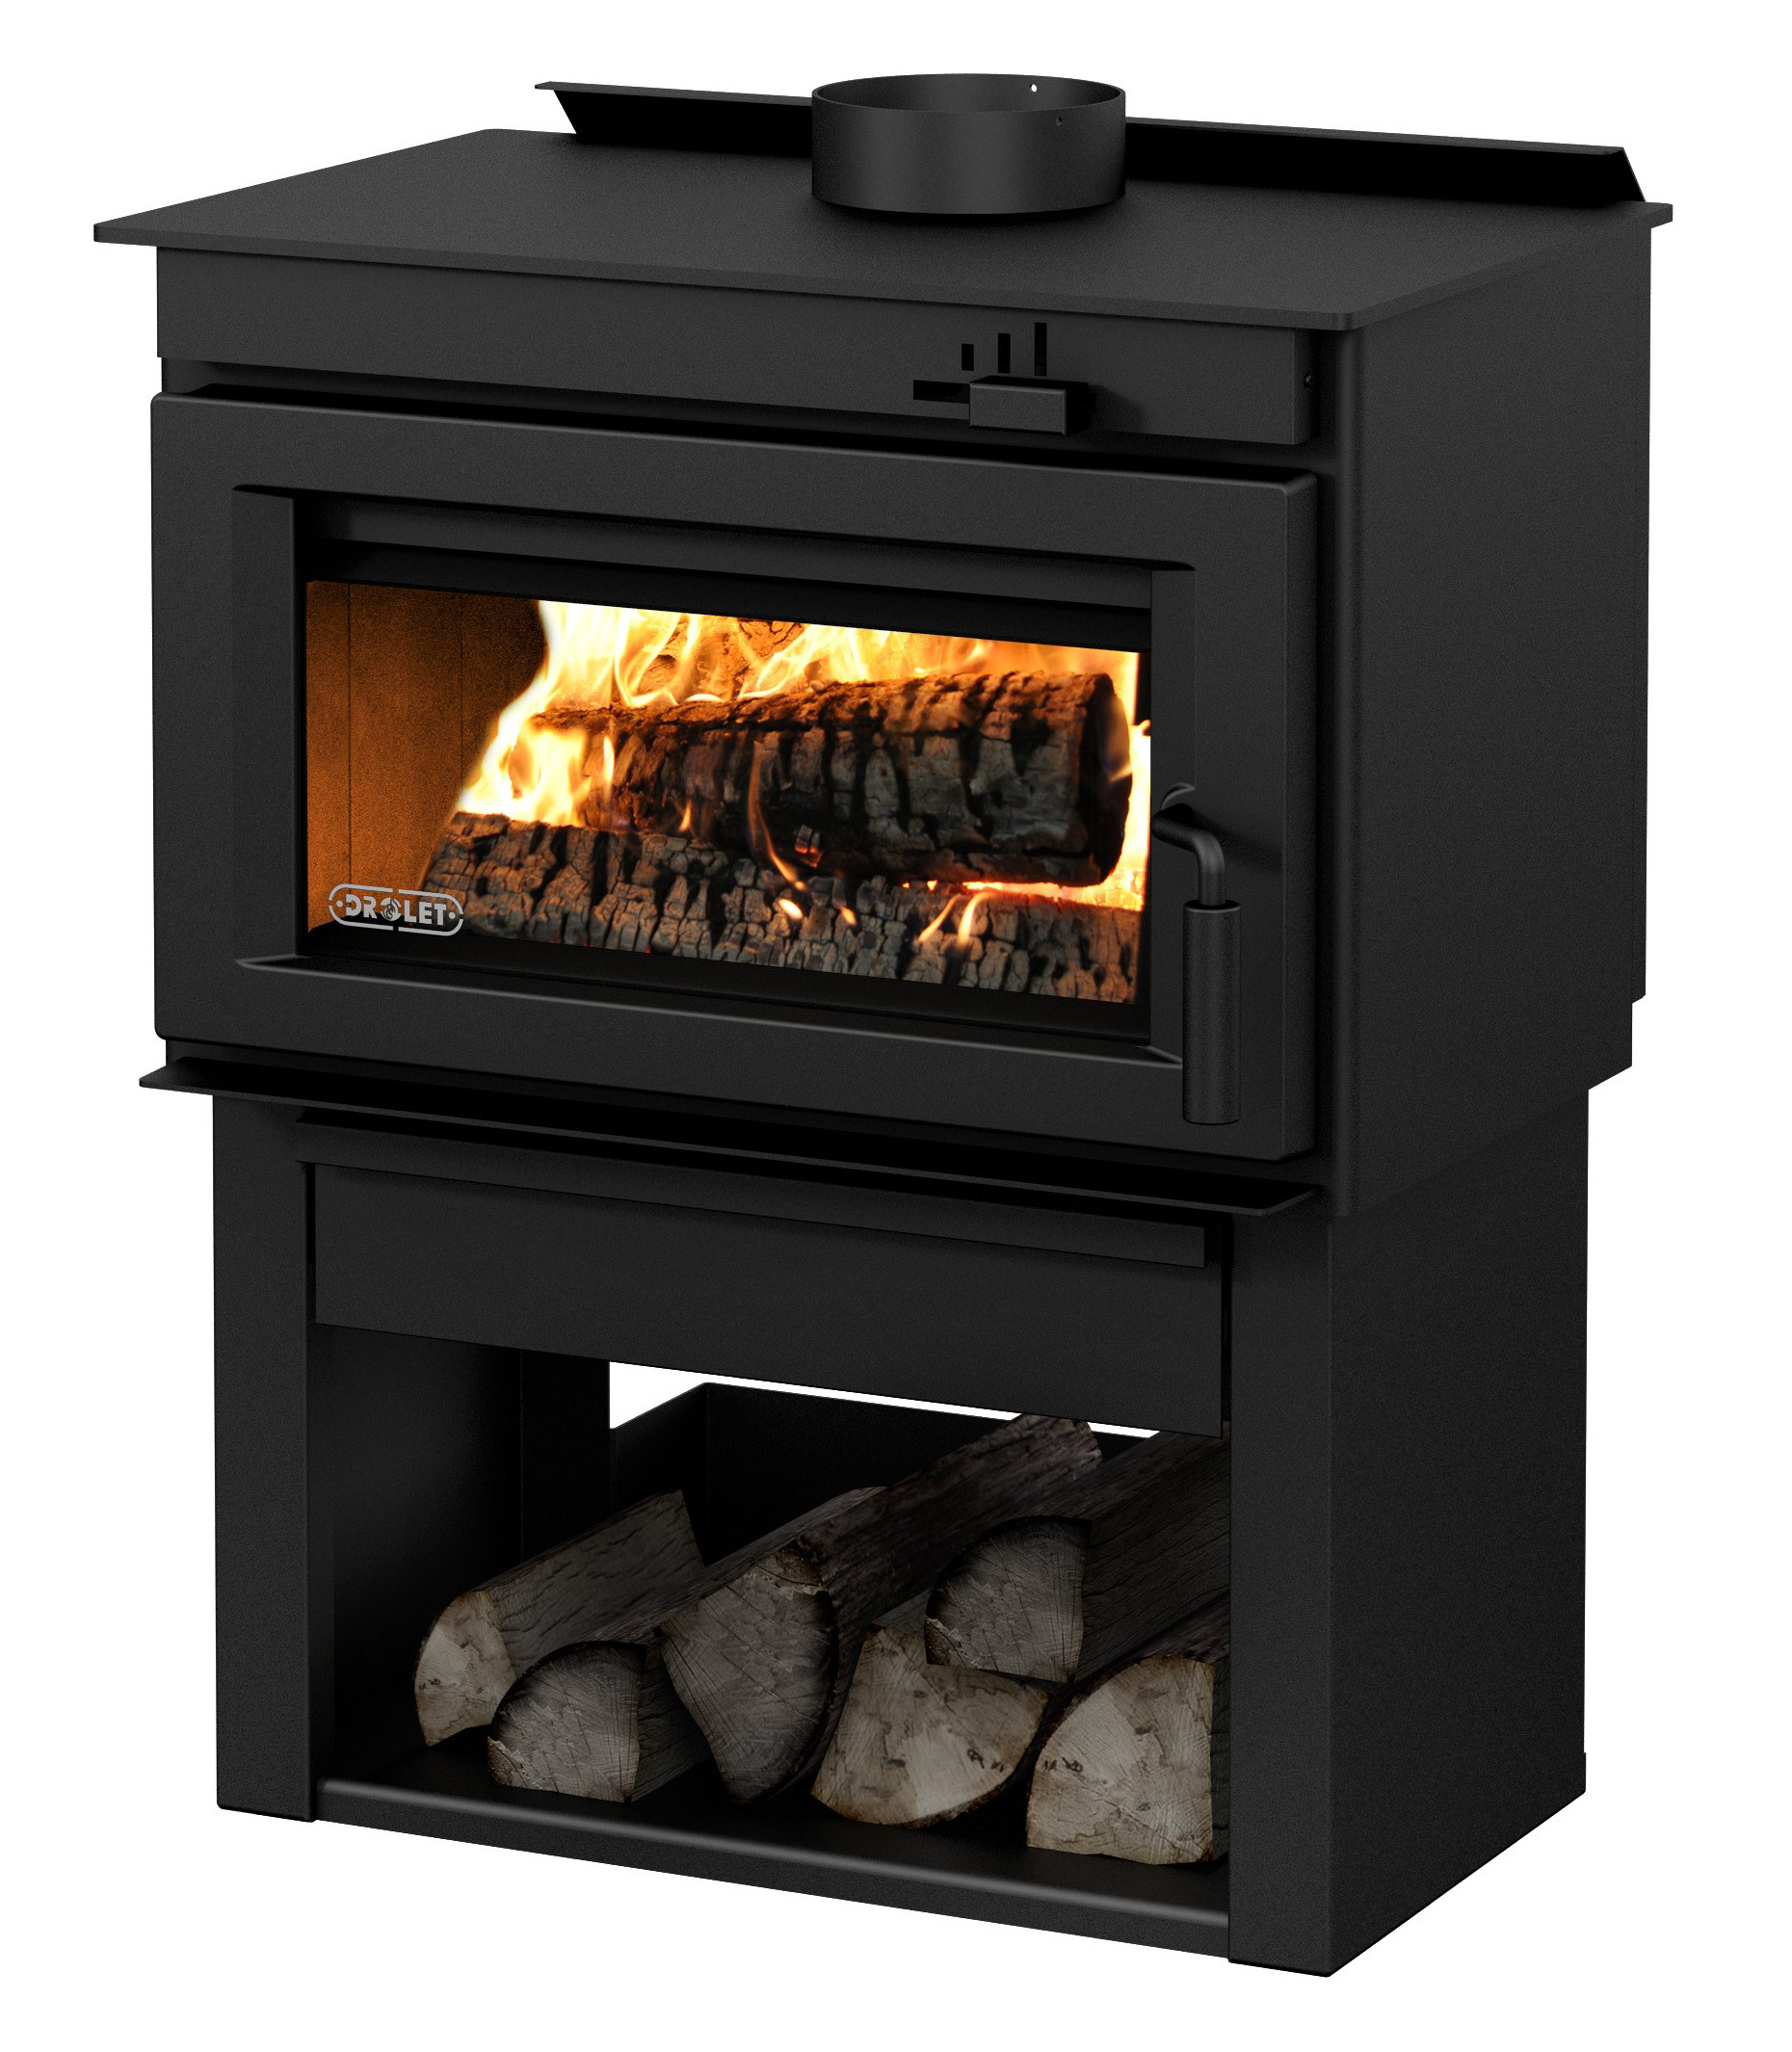 Contemporary Style Wood Stove - Drolet Deco